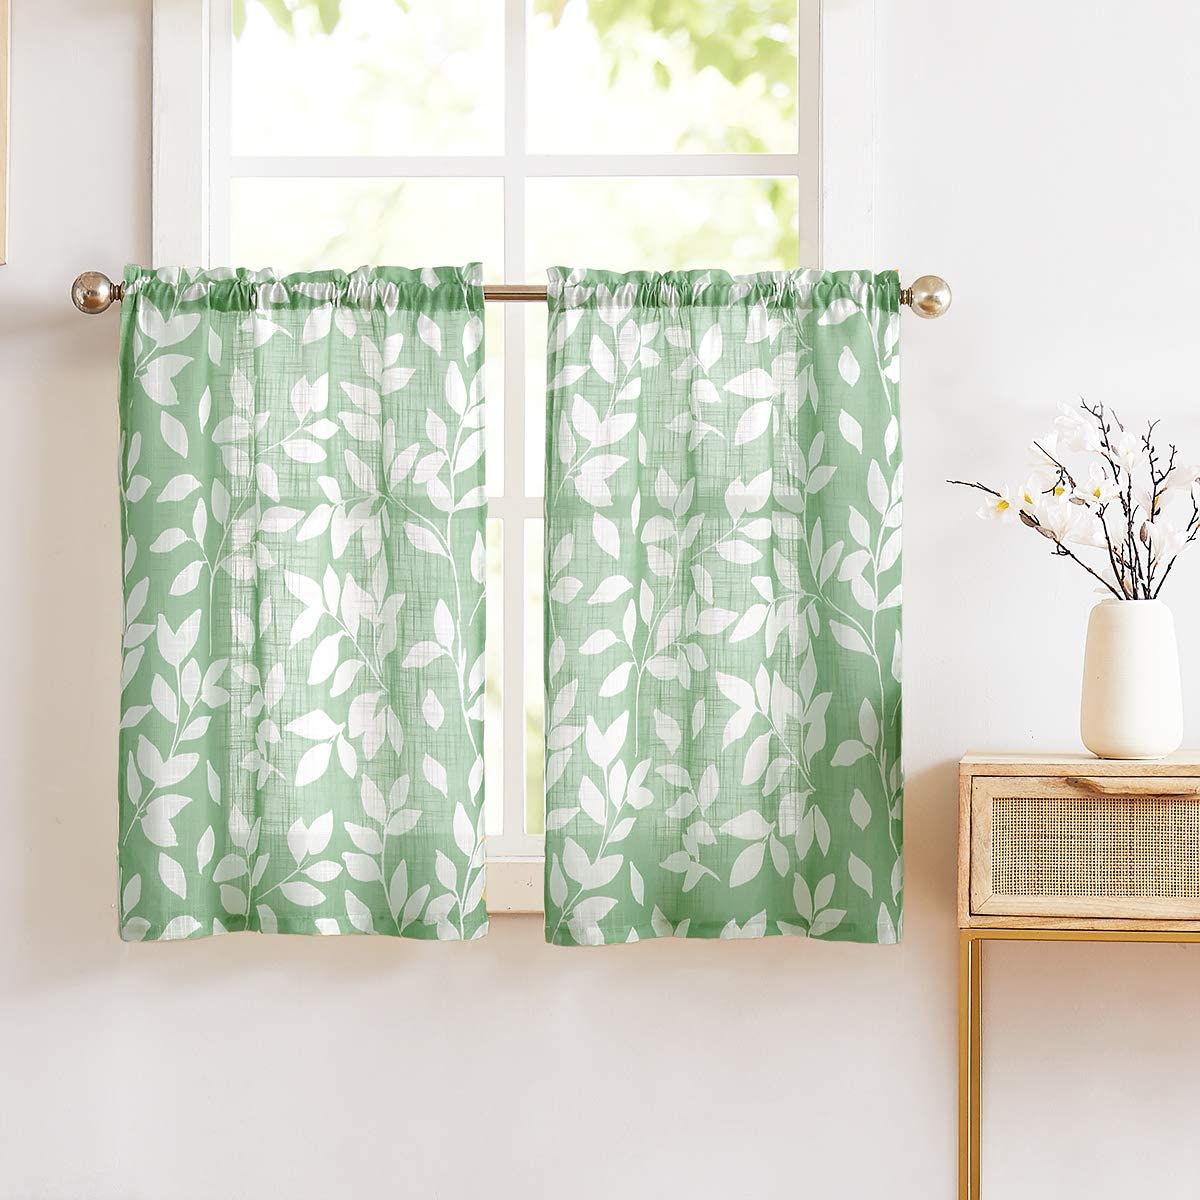 "NATWIN Tier Kitchen Curtains for Bathroom 24"" Green and White Leaves Print Tiers for Laundry Room Basement 2 Panels"